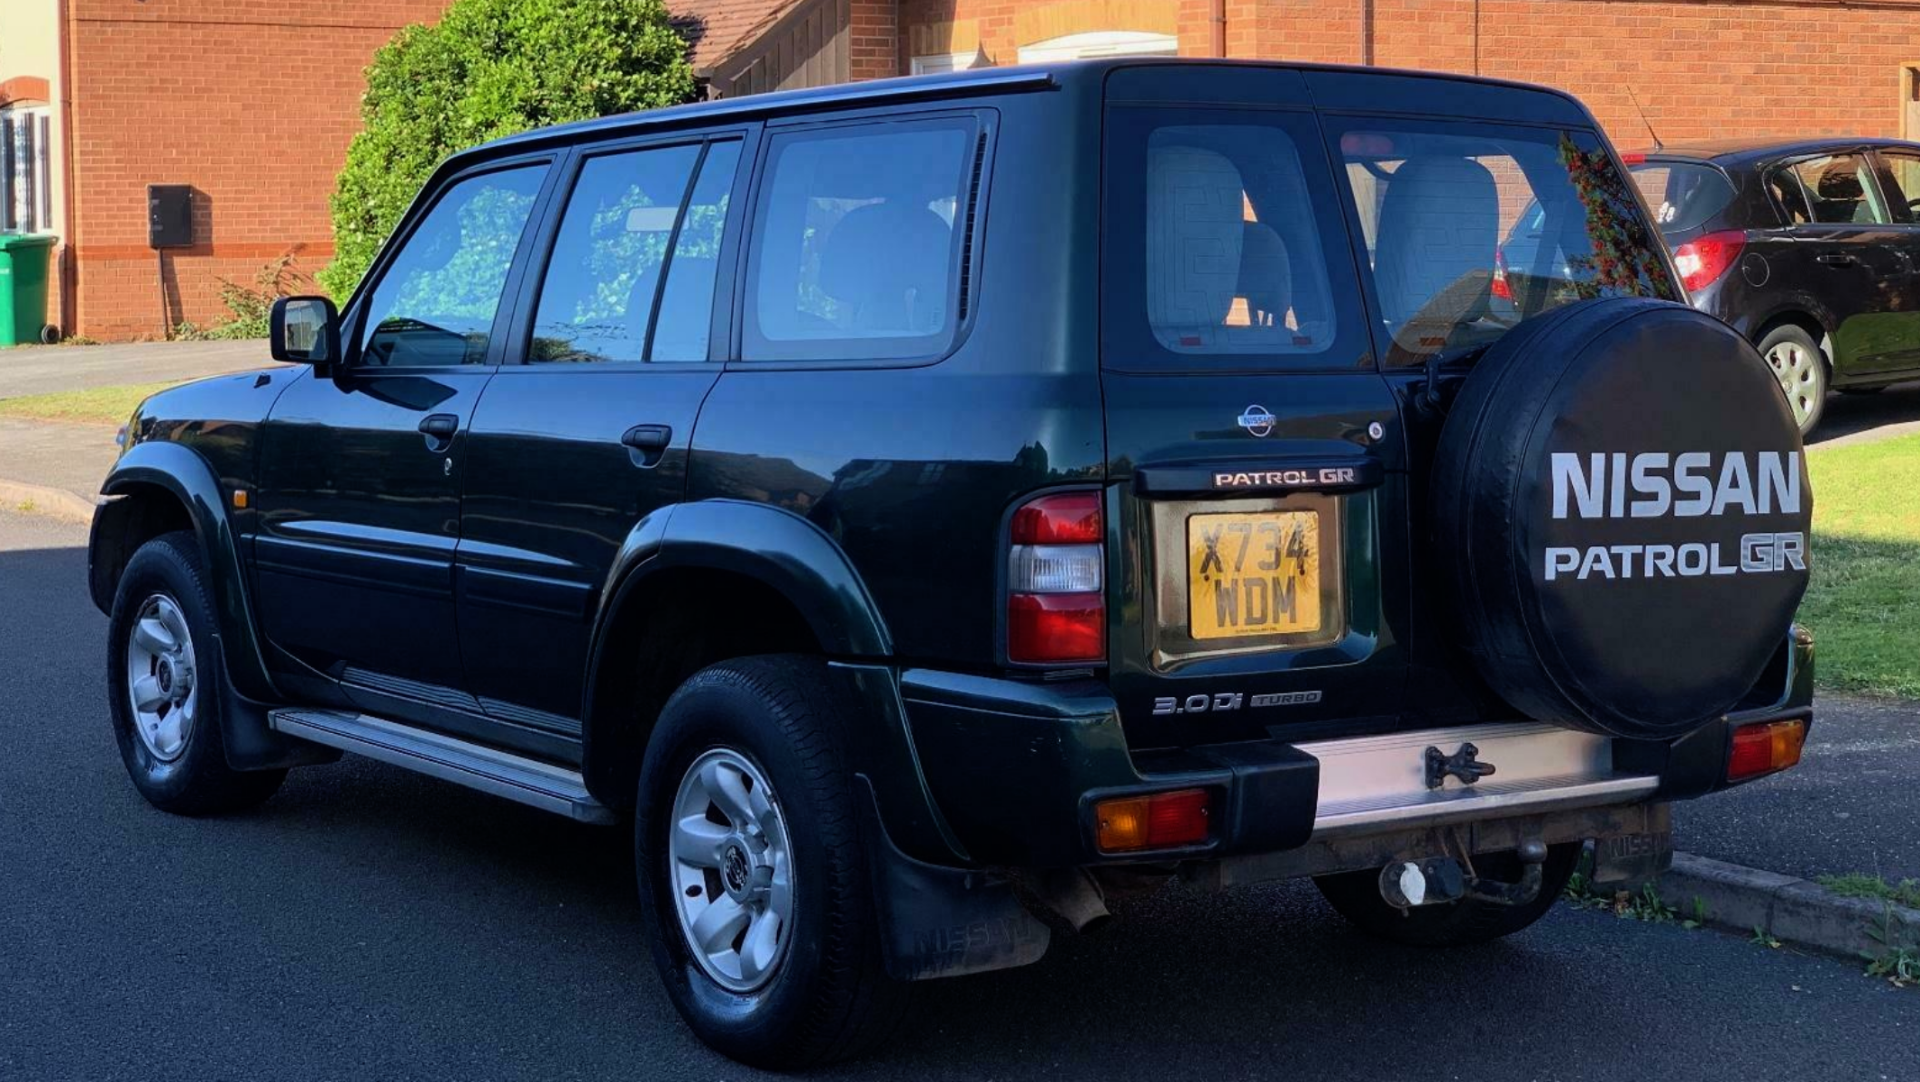 Lot 67 - NISSAN PATROL GR 3.0 SE 4X4 SEAT 88K MILES STARTS AND DRIVES WELL